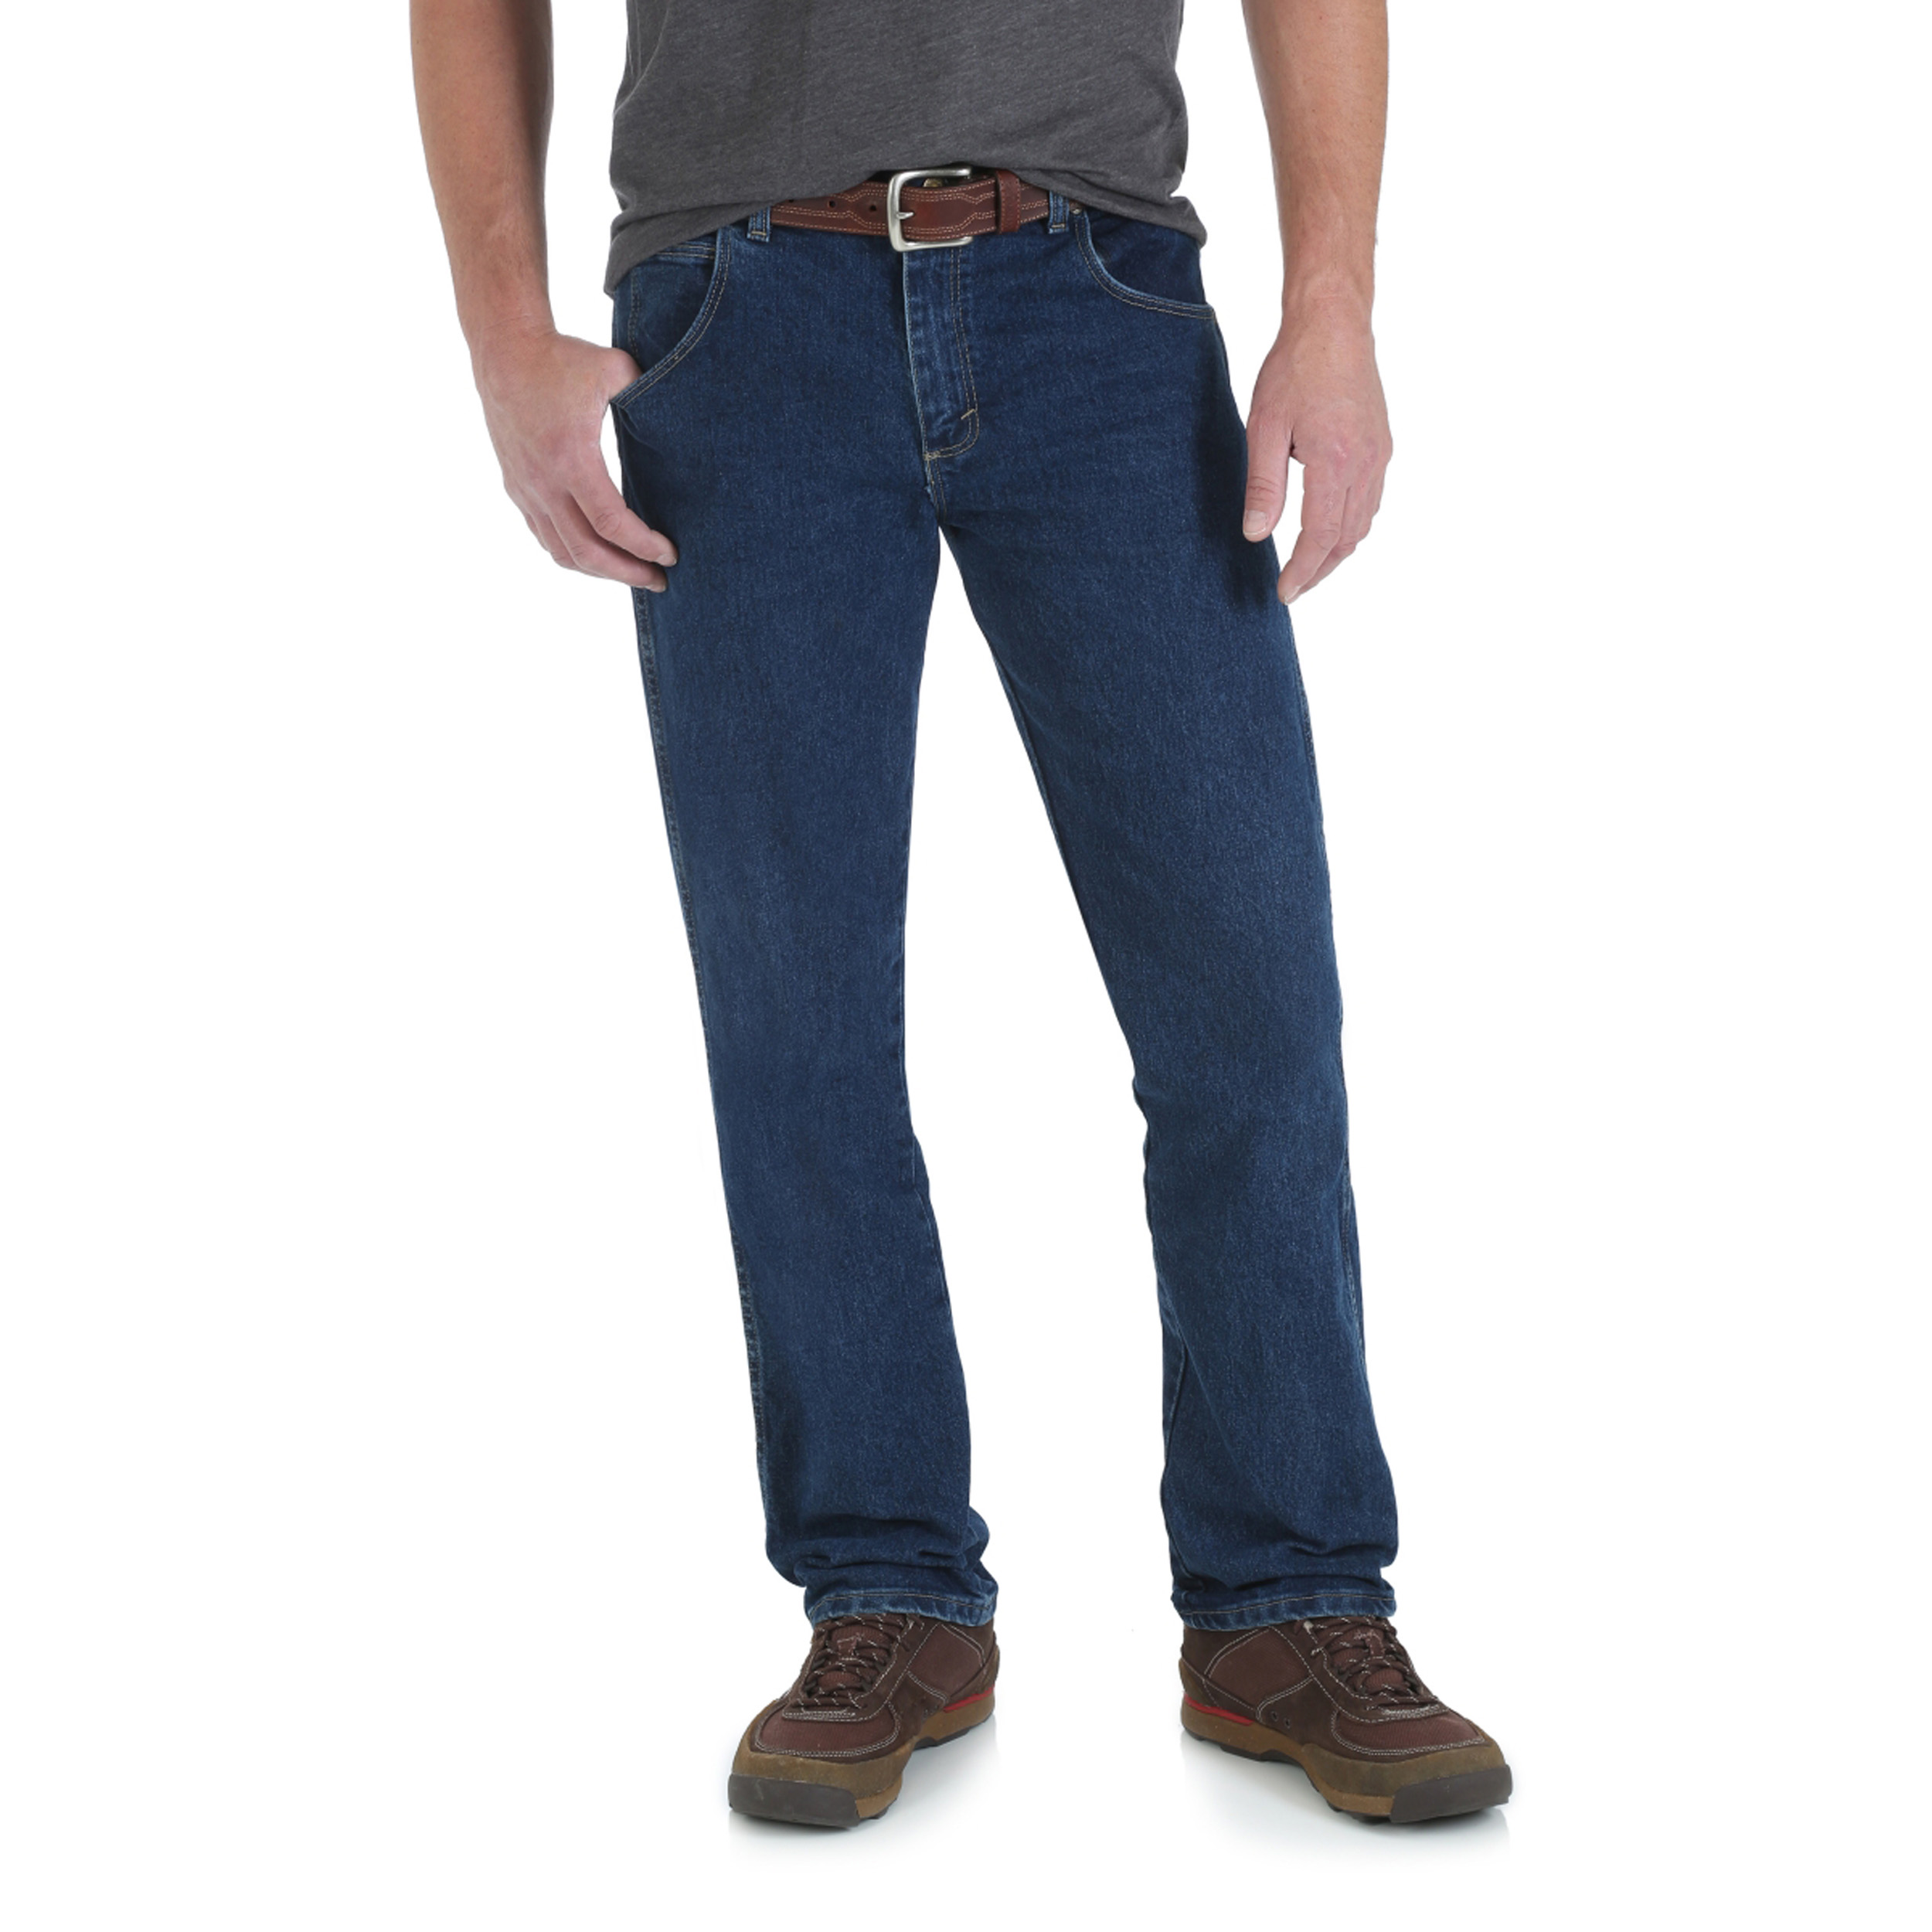 Wrangler Rugged Wear Advanced Comfort Regular Straight Jean   Walmart.com